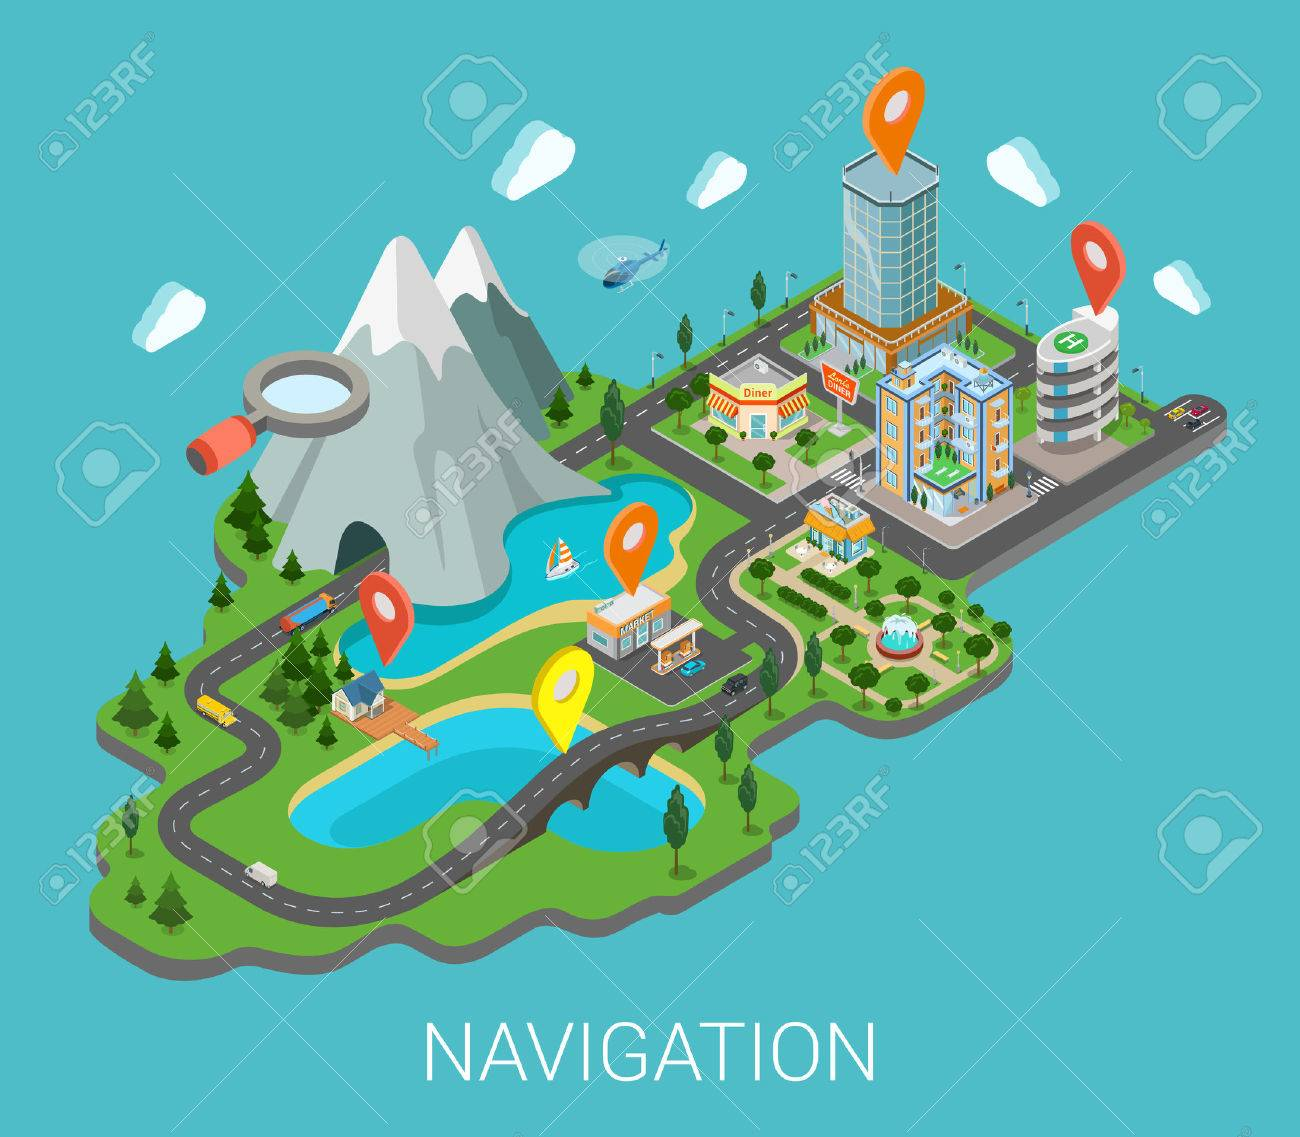 Flat 3d isometric map mobile GPS navigation app infographic concept. City countryside lake mountain gas station park restaurant bridge hotel shopping mall route pin markers. Navigate info graphics. Stock Vector - 54642384